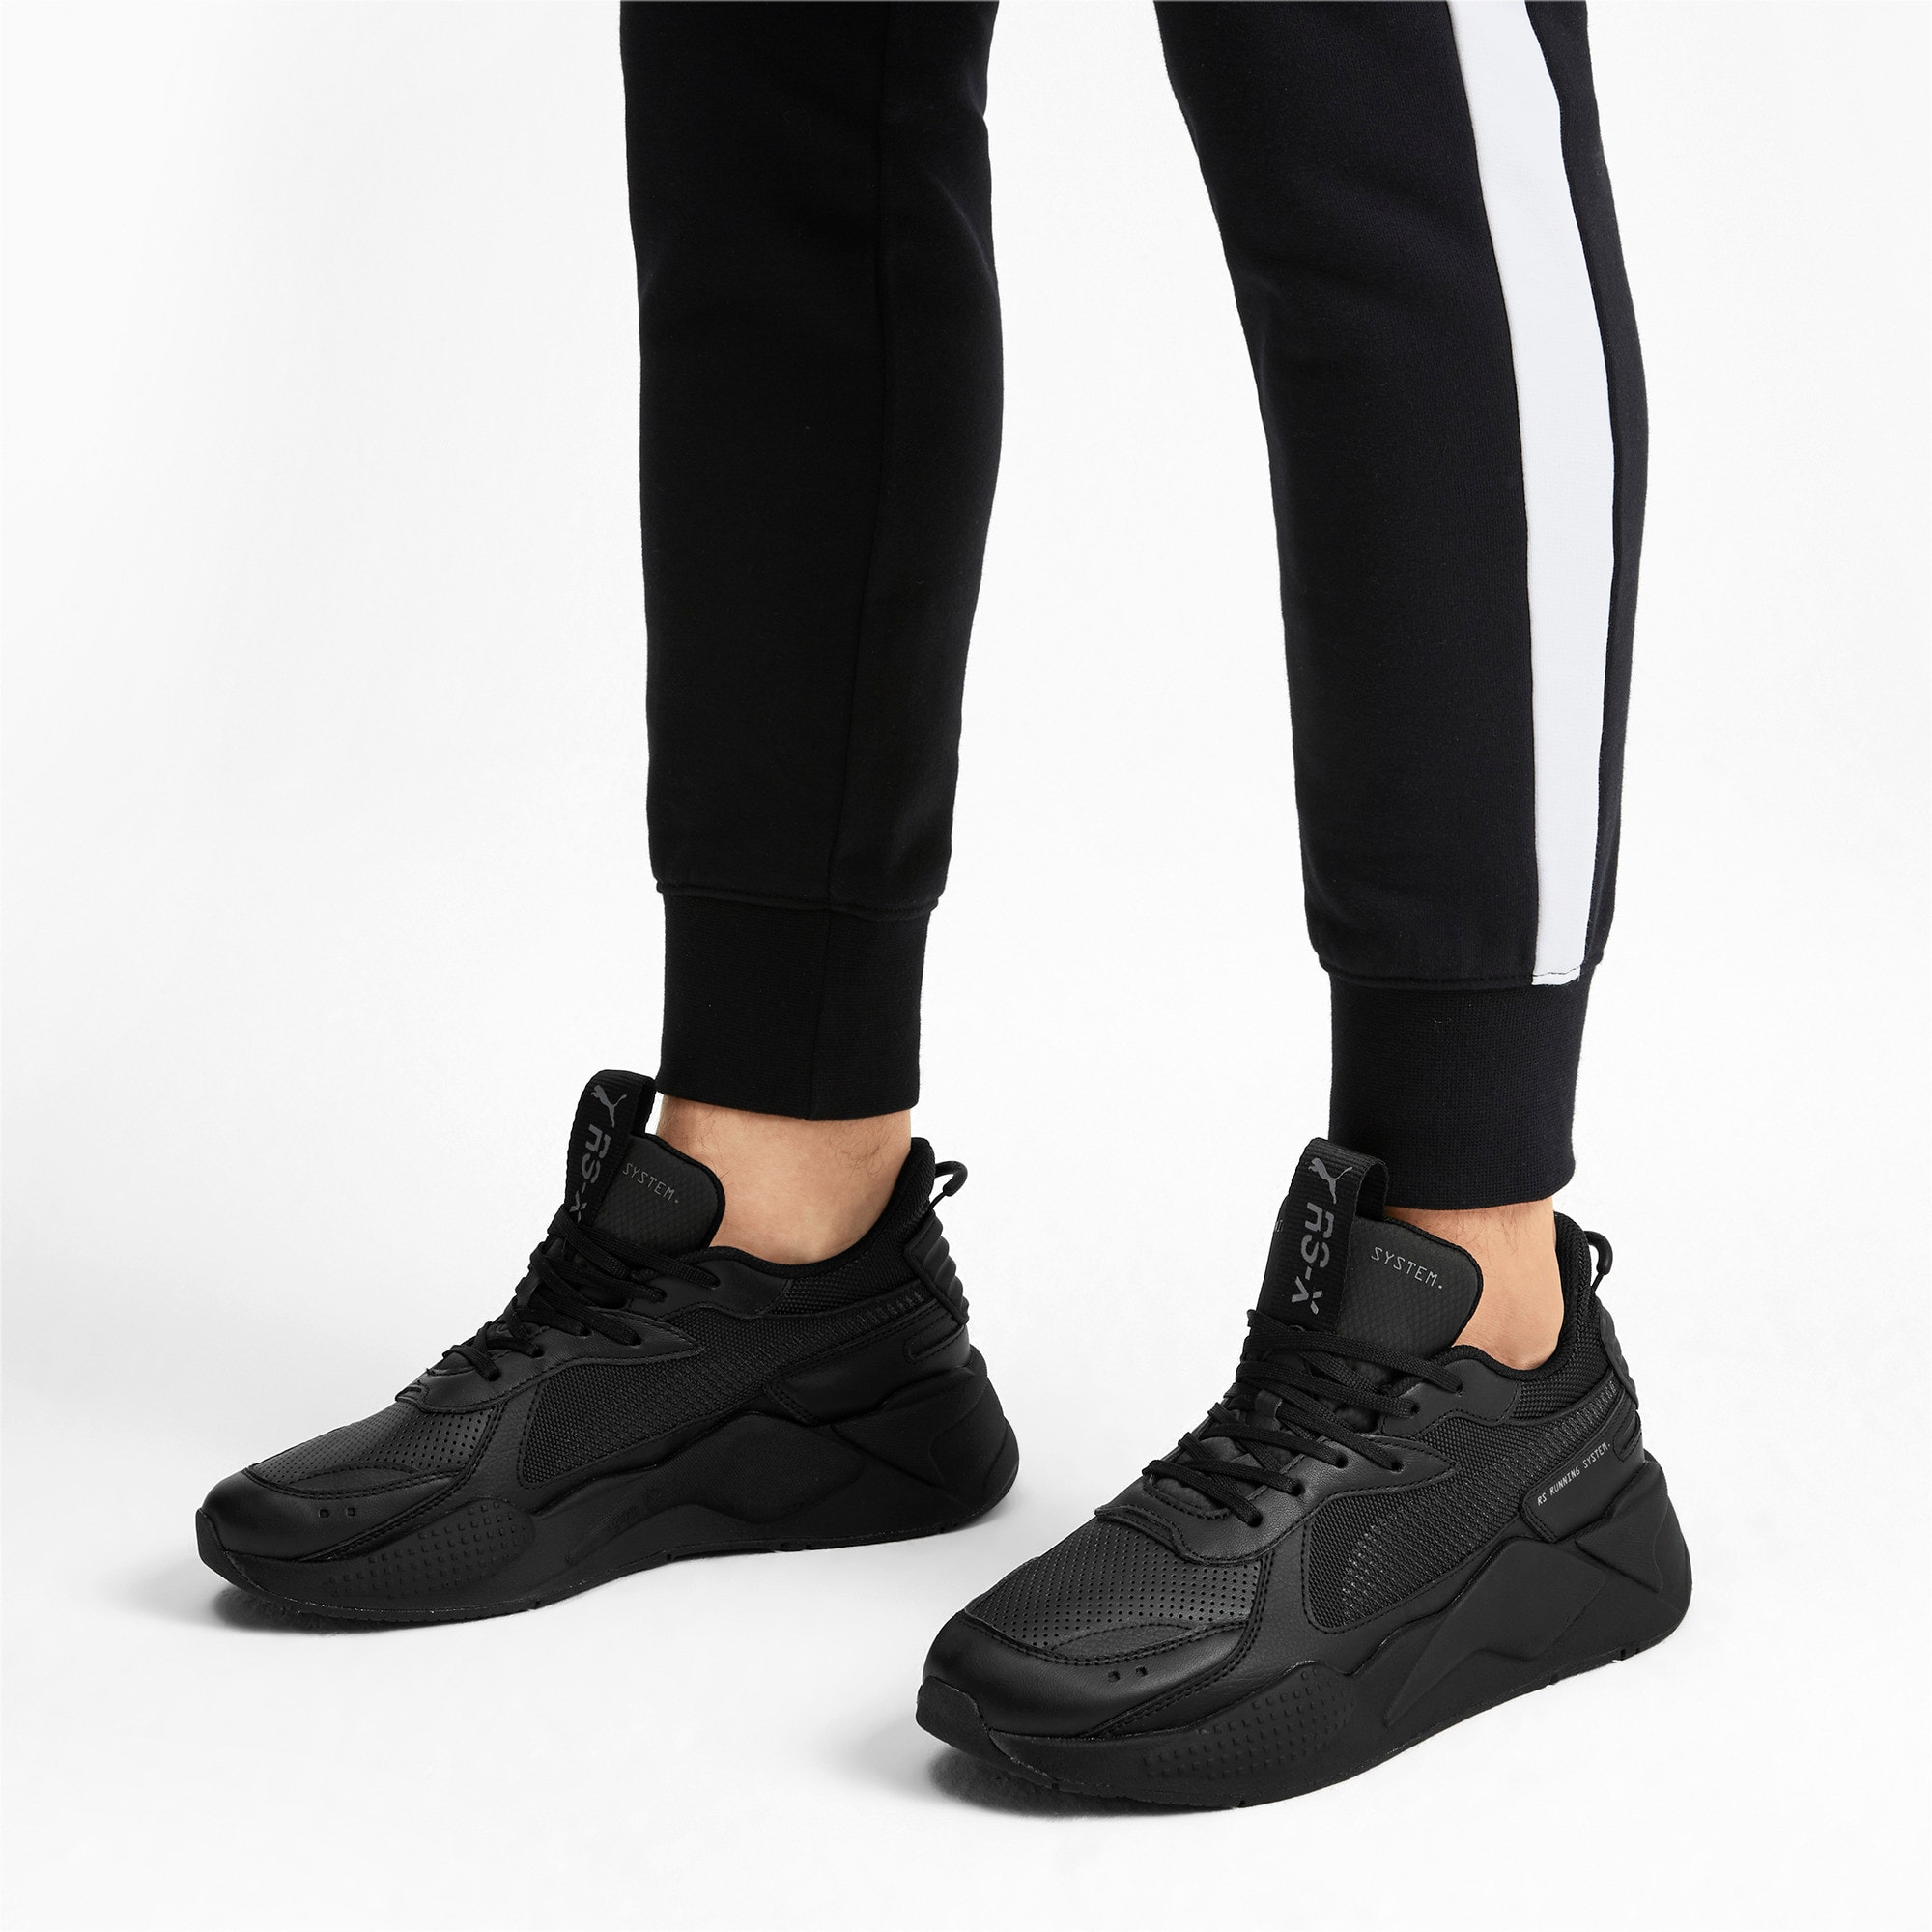 Thumbnail 2 of RS-X Winterised Trainers, Puma Black, medium